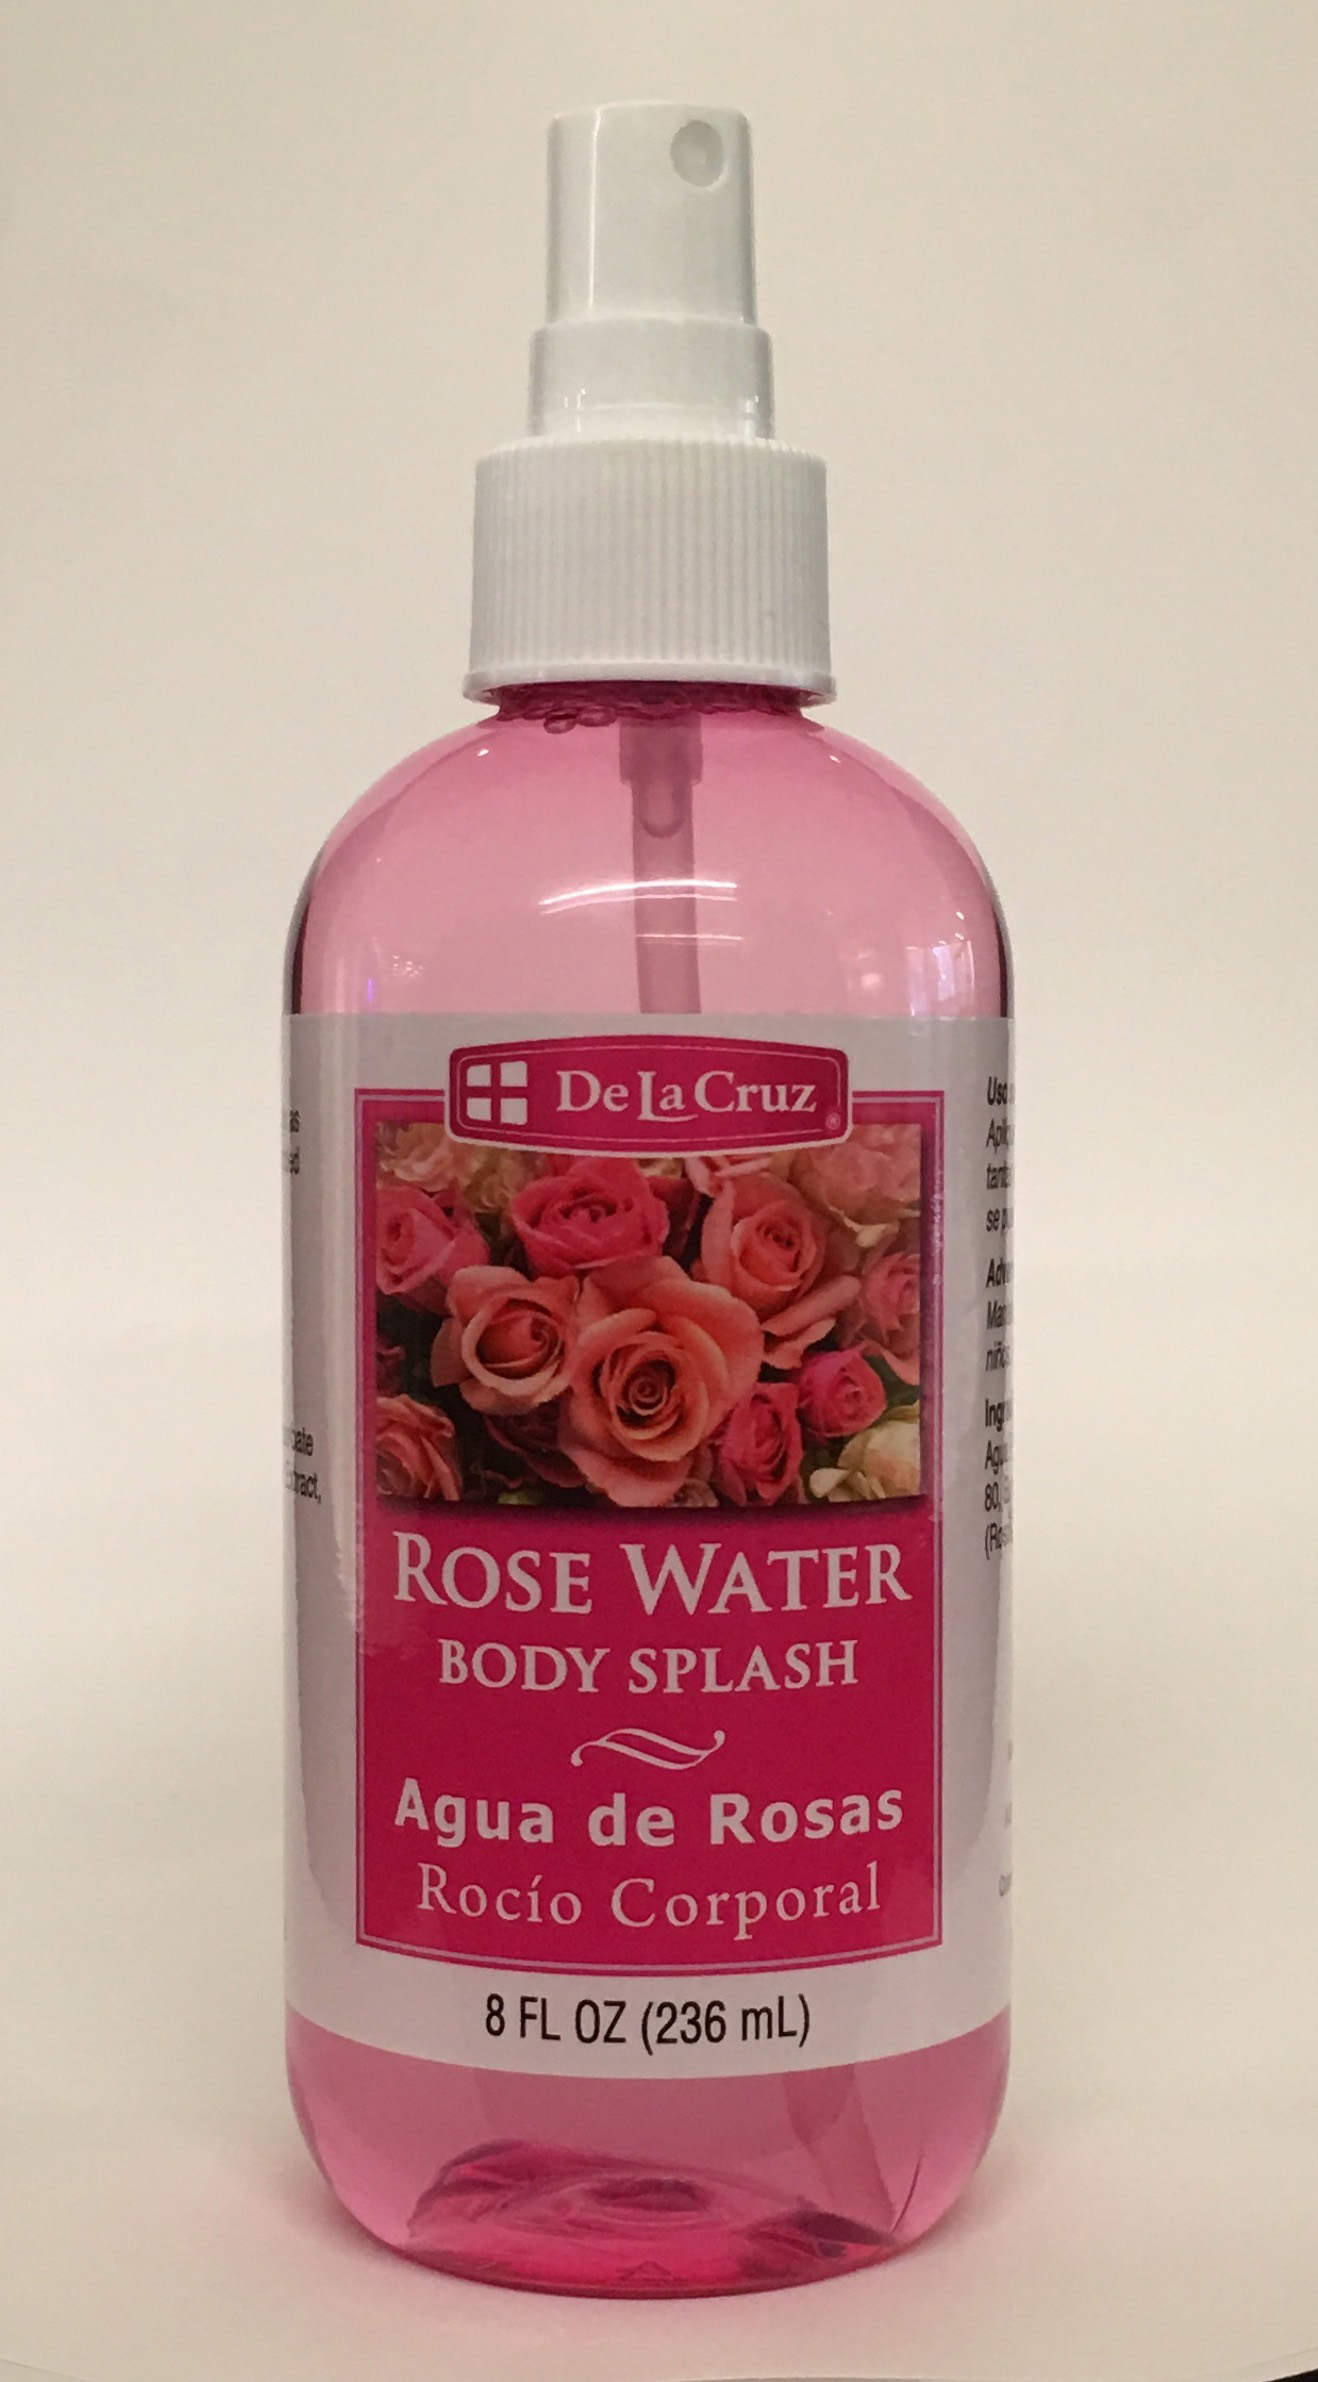 Agua de Rosas Rose water